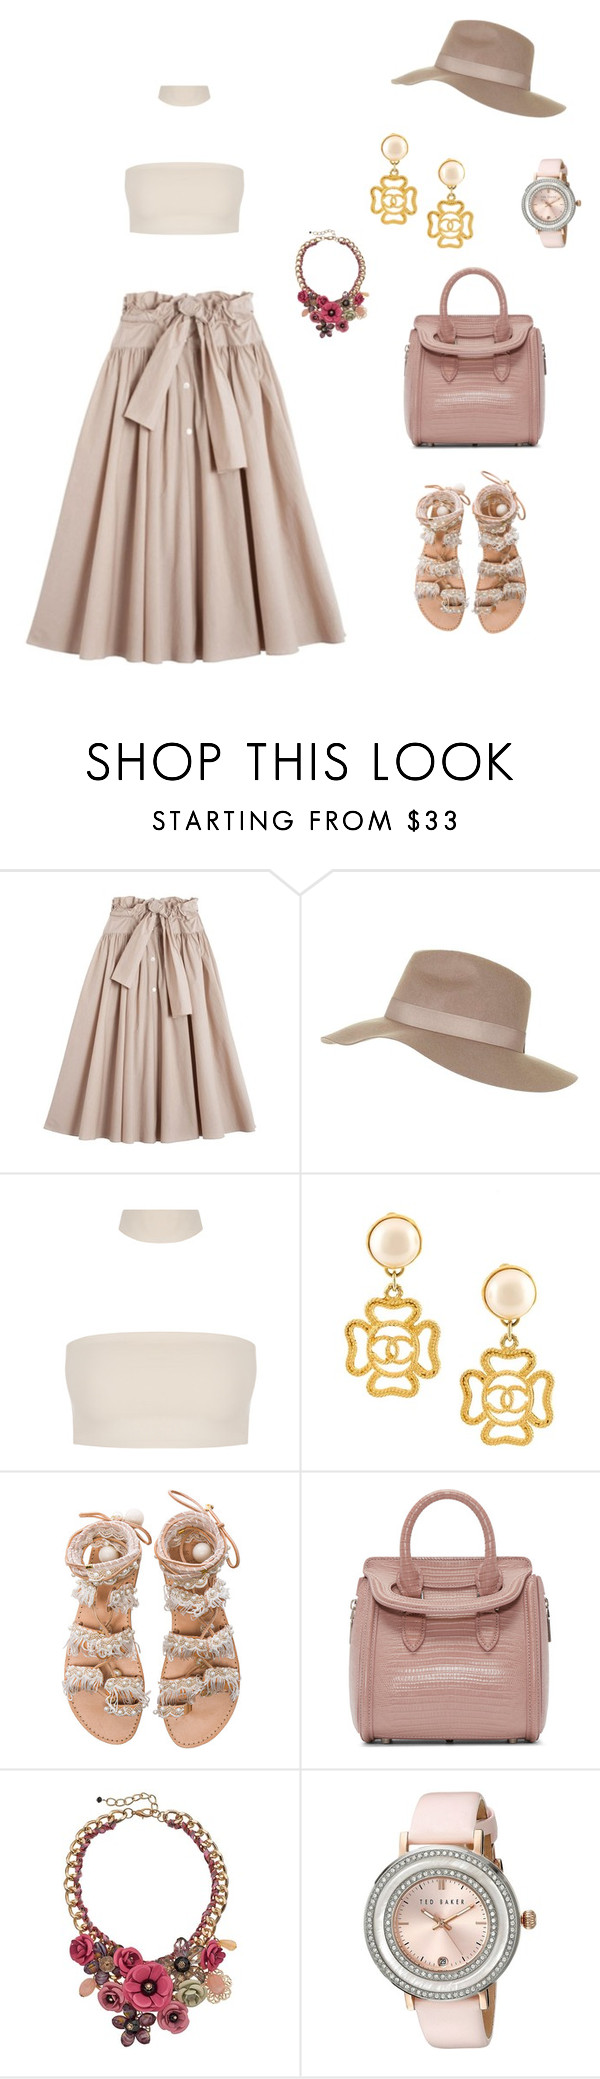 """""""Untitled #1696"""" by bushphawan ❤ liked on Polyvore featuring Maryam Nassir Zadeh, Topshop, Chanel, Elina Linardaki, Alexander McQueen, Loli Bijoux and Ted Baker"""